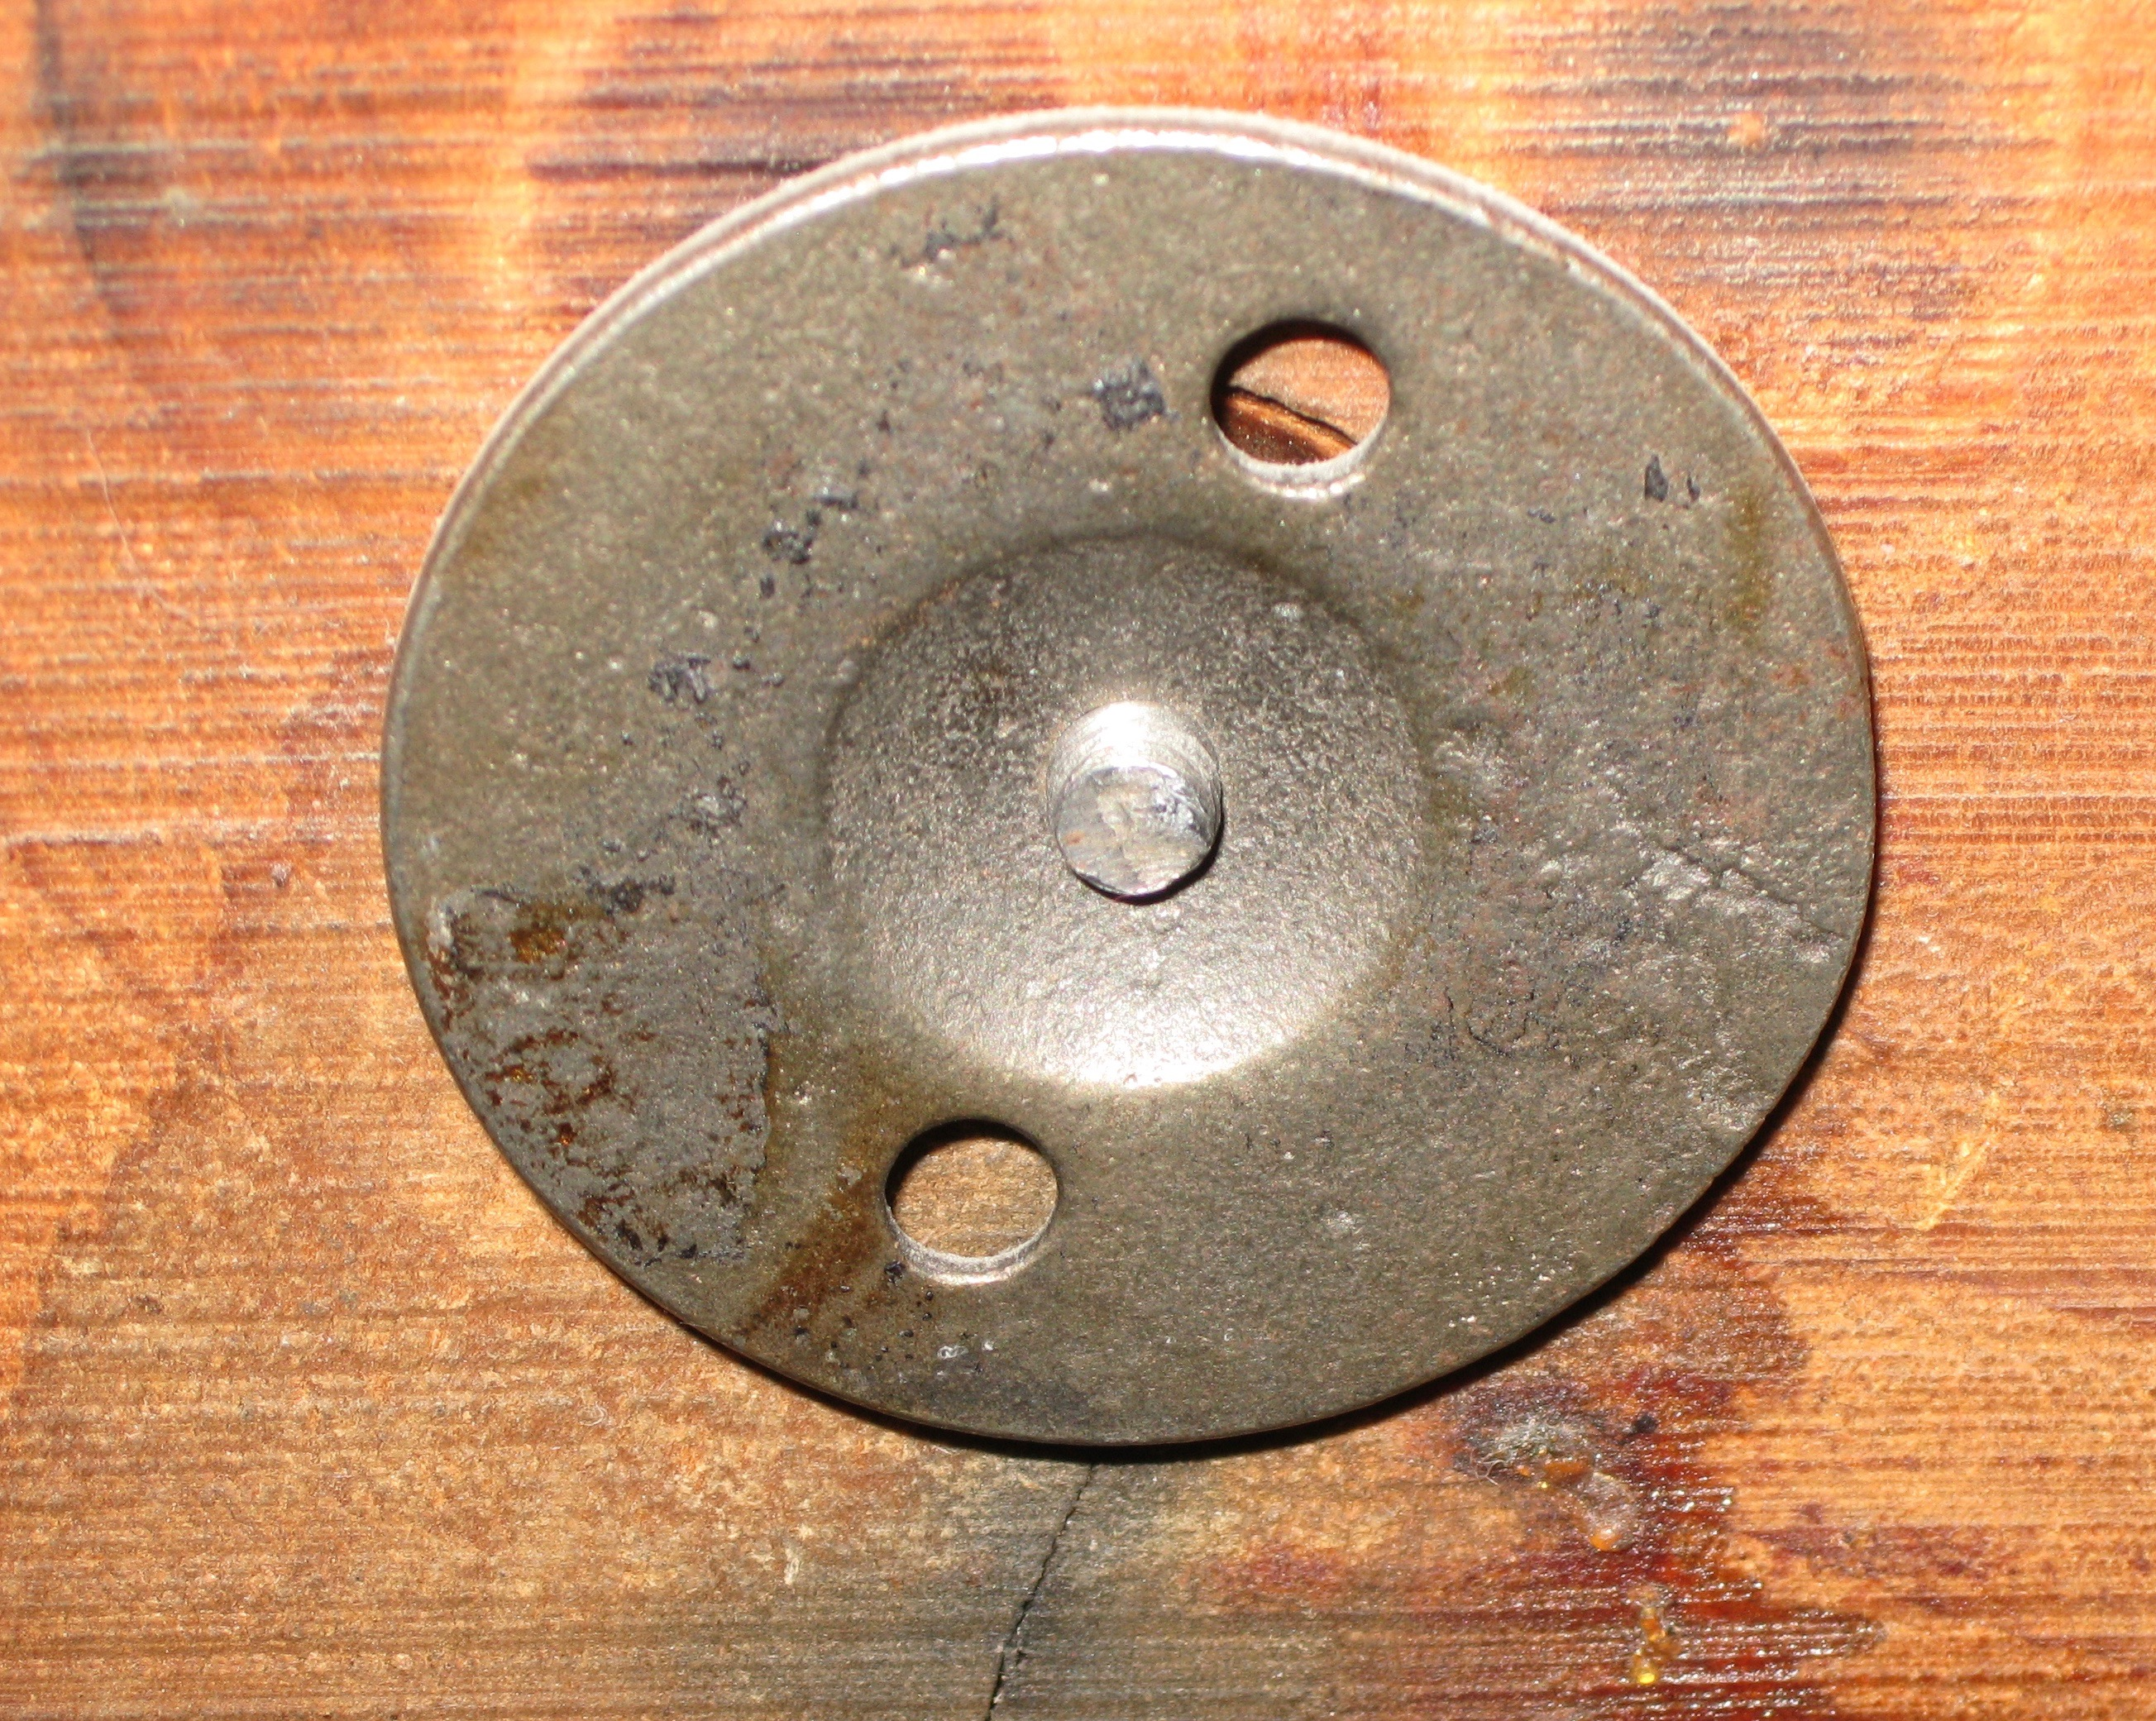 Iron flange outside the back that secures the gong.